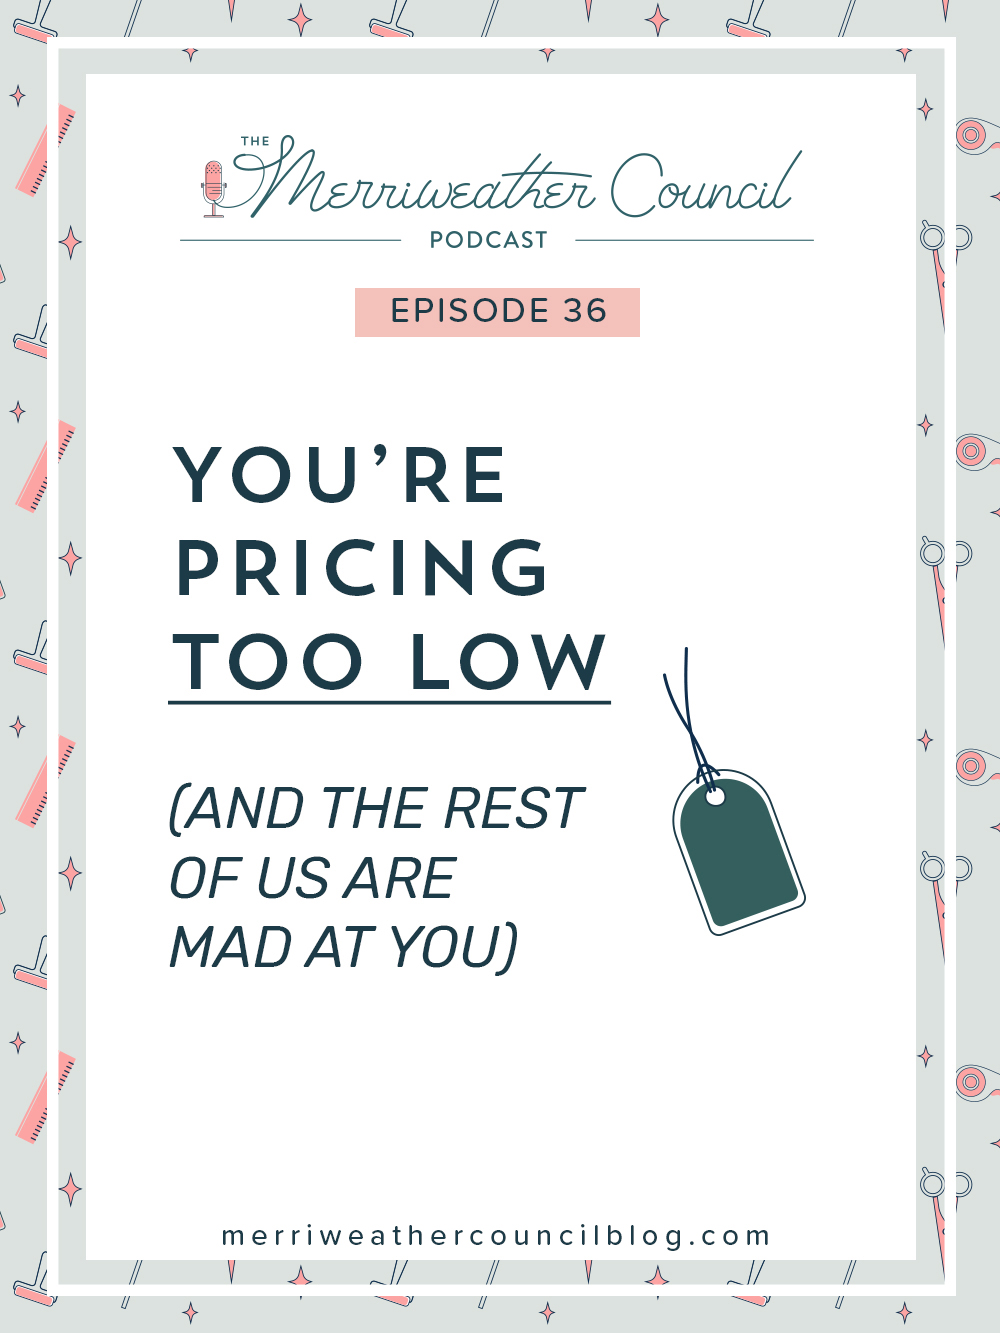 Episode 36: You're Pricing Too Low (and the Rest of us Are Mad at You)   The Merriweather Council Podcast